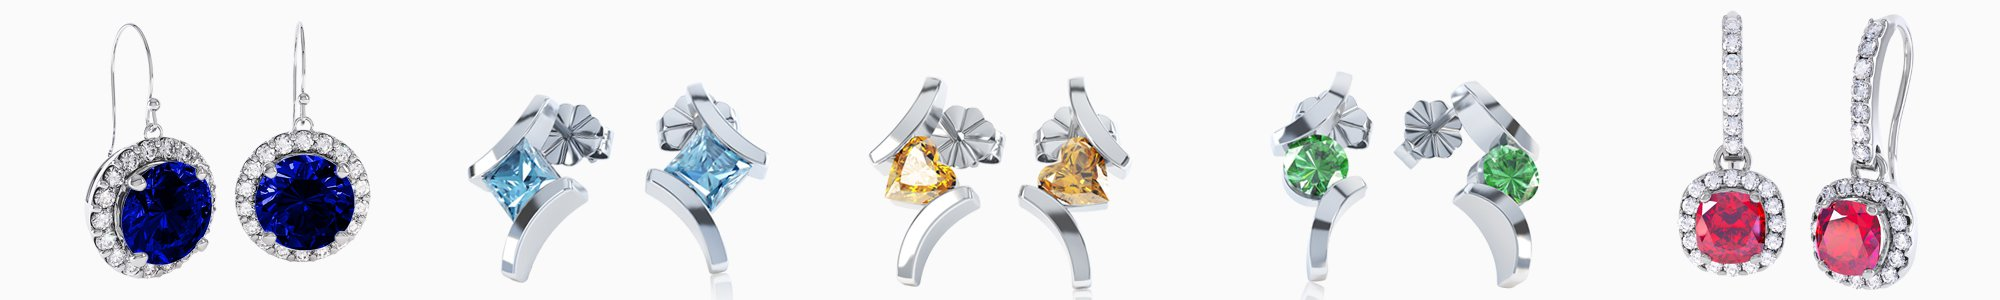 Shop Gemstone Earrings by Jian London. Buy direct and save from our wide selection of Gemstone Earrings at the Jian London jewelry Store. Free US Delivery